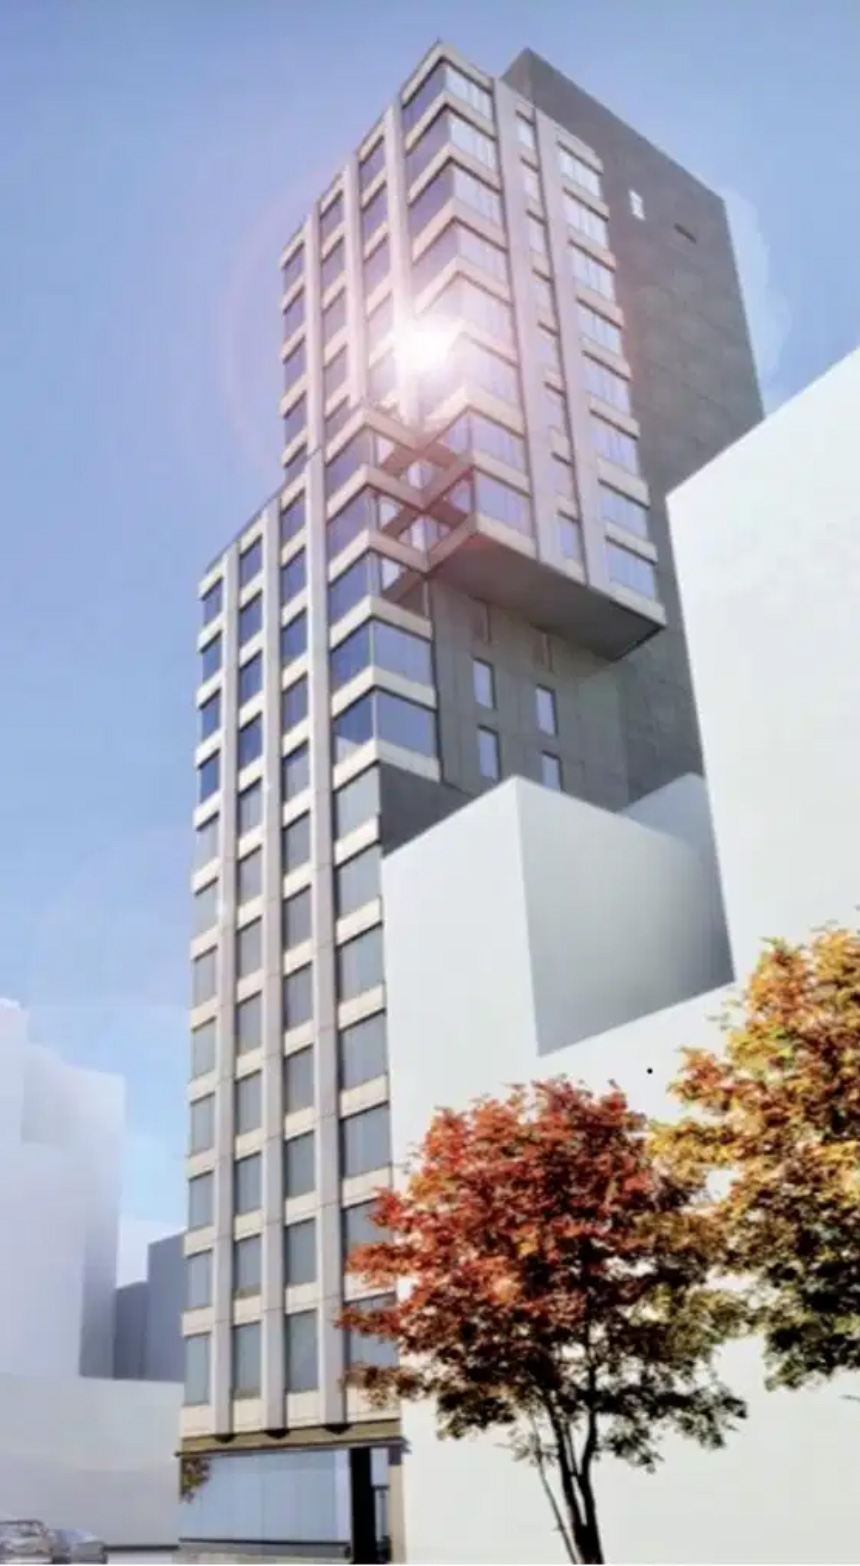 Rendering of 202 East 23rd Street - Hill West Architects